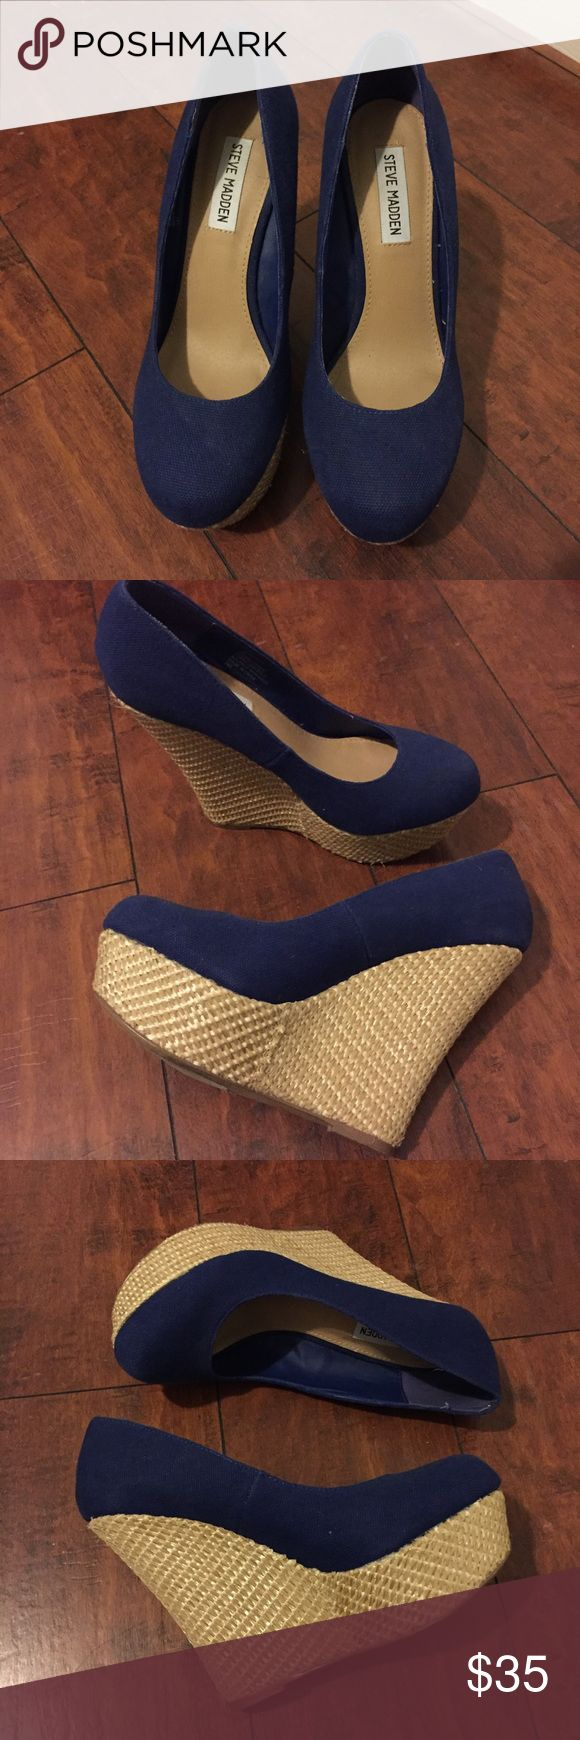 DEAL OF DAY Steve Madden Blue & Cream Wedges Size 8. Good condition. Blue top, cream/nude bottom Shoes Wedges